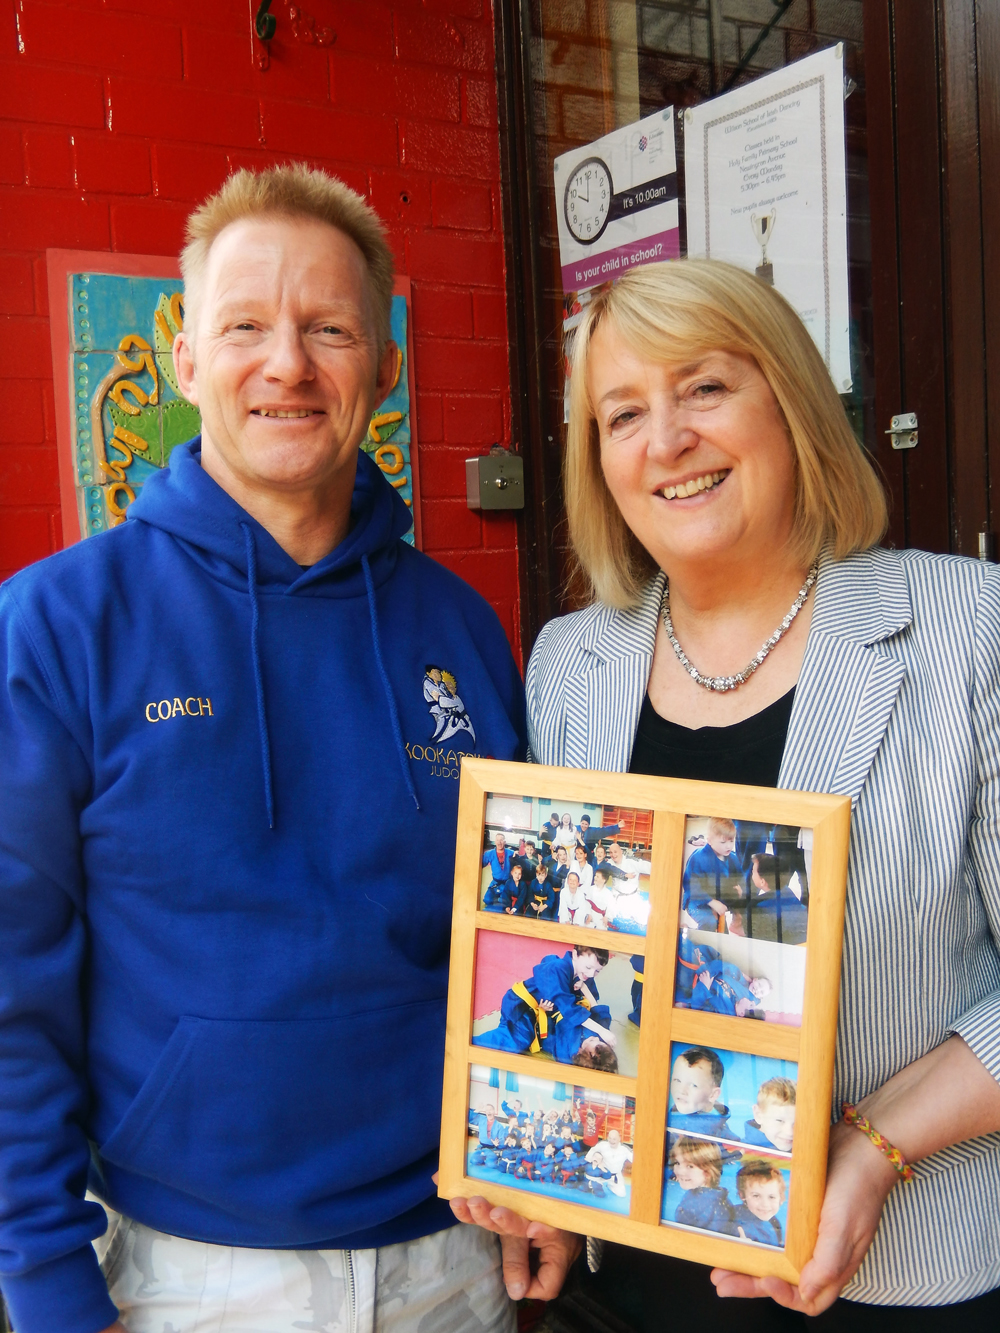 Jonathan presents Mrs MacManus with a photo collage